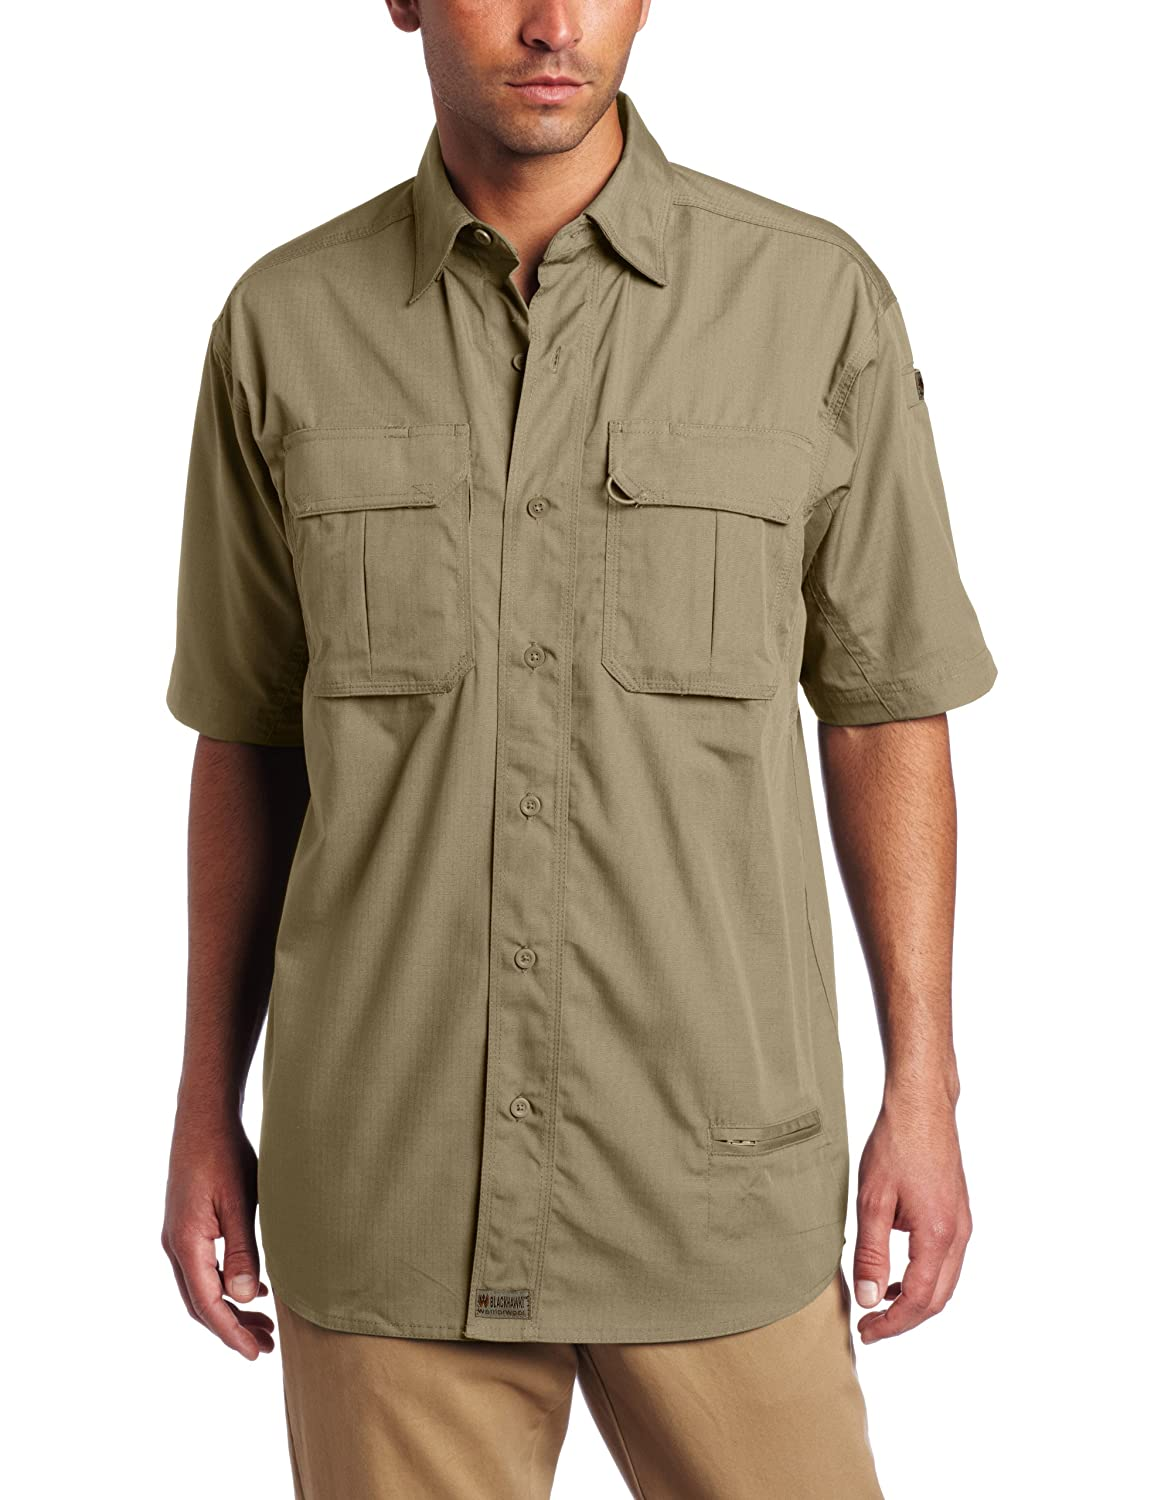 Amazon blackhawk mens lightweight tactical shirt short sleeve amazon blackhawk mens lightweight tactical shirt short sleeve sports outdoors publicscrutiny